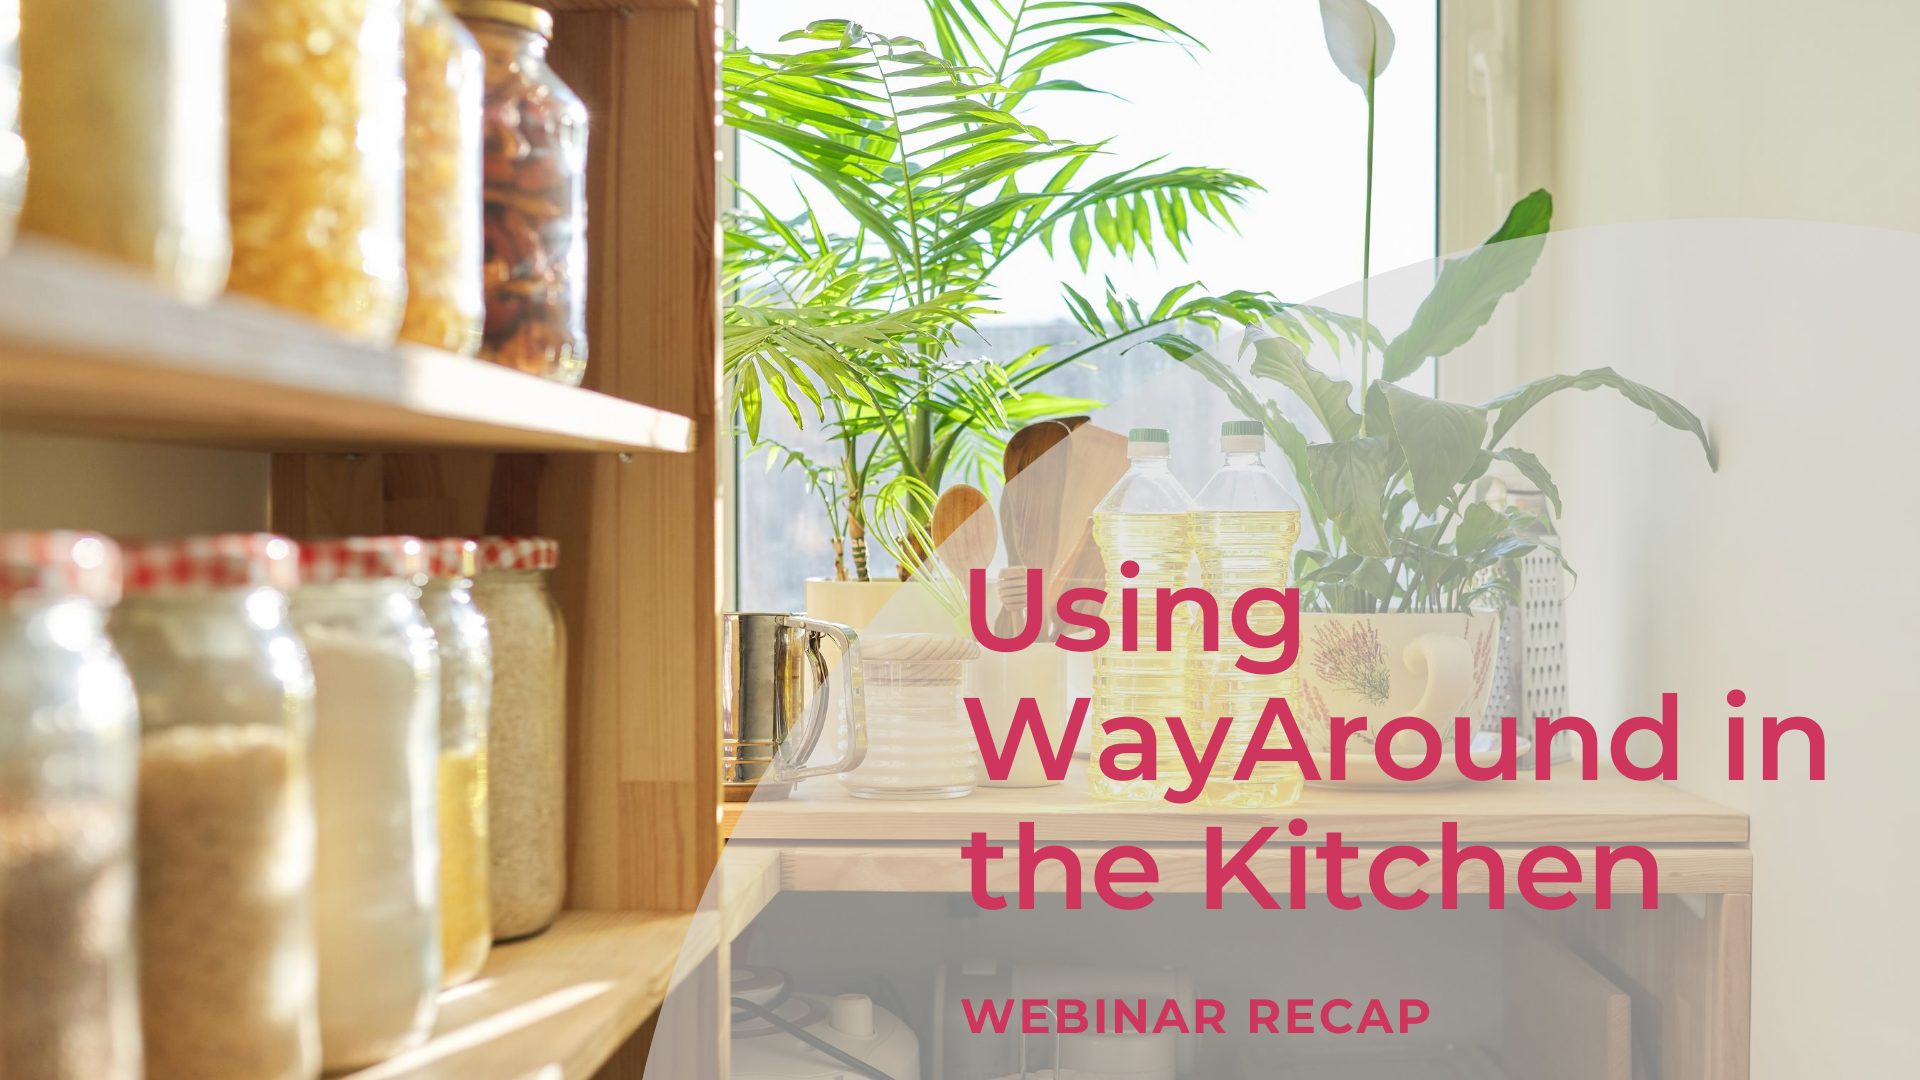 Background photo of jars on wooden shelves with a window. Text says Using WayAround in the Kitchen. Webinar Recap.